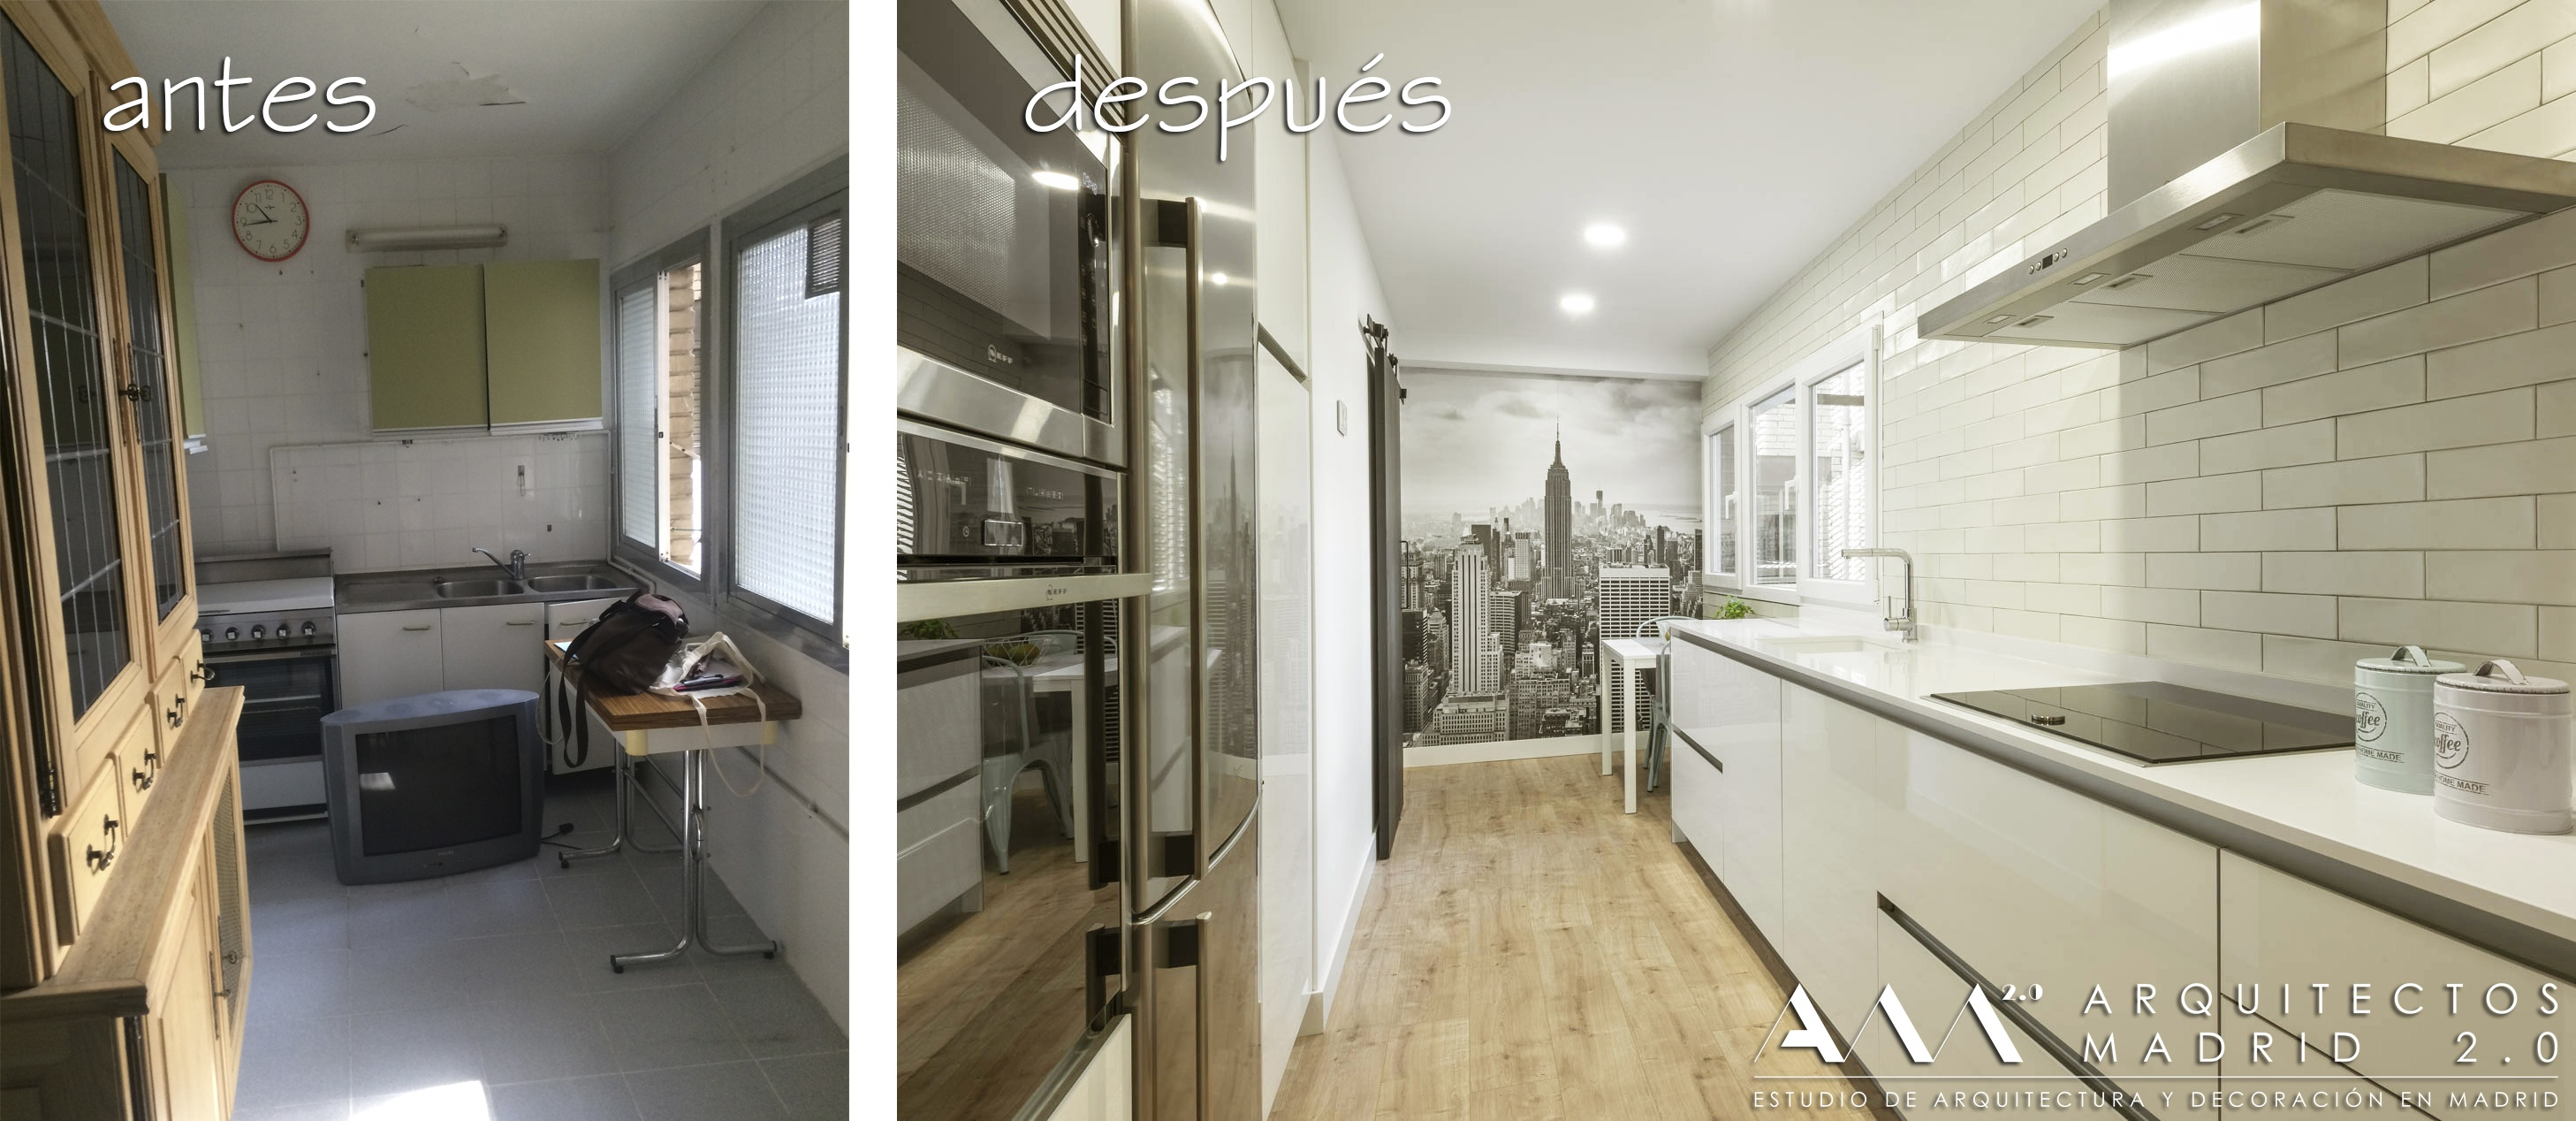 antes-despues-reforma-vivienda-housing-reform-architects-before-after-kitchen-cocina